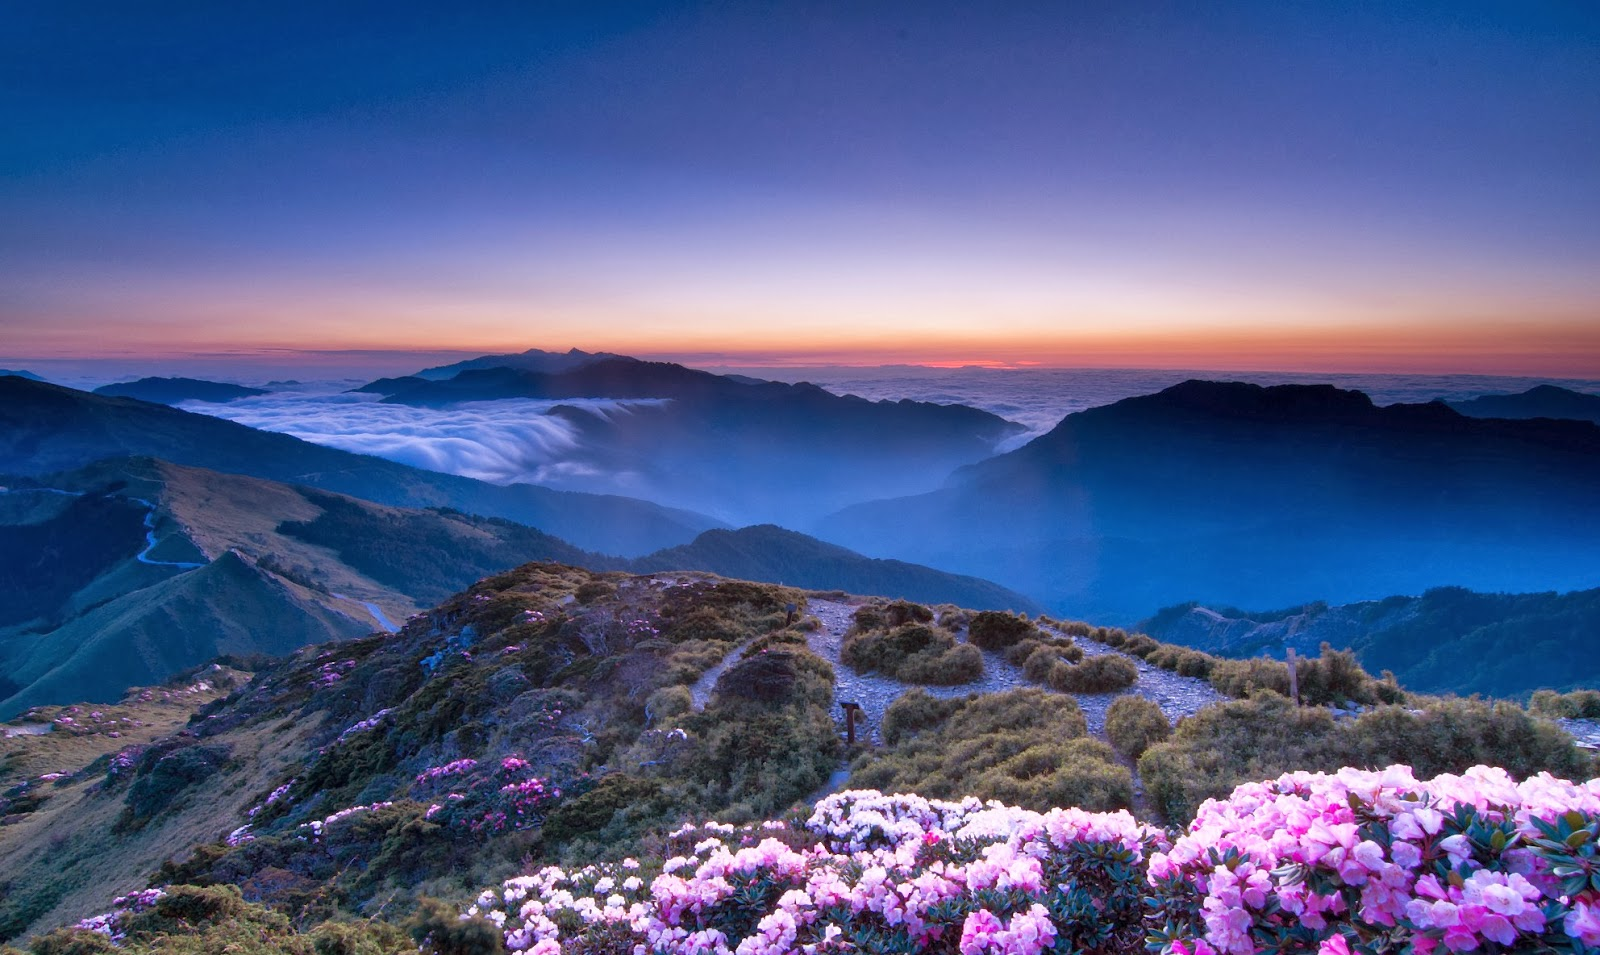 high definition nature wallpaper - photo #30